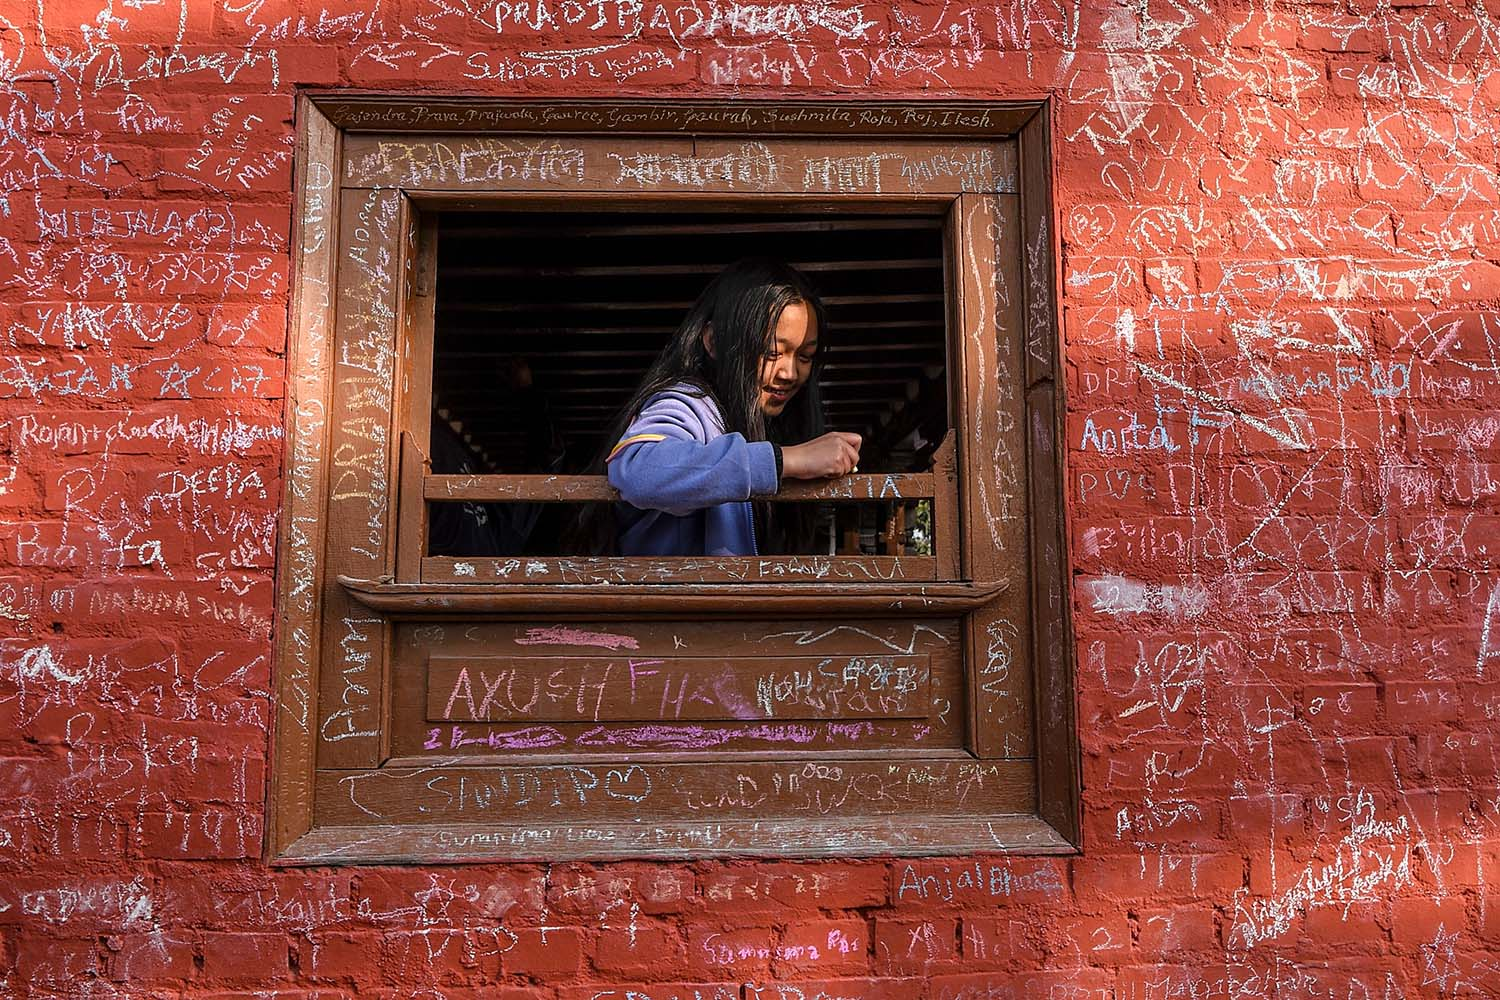 A girl writes messages with chalk on a window frame at Saraswati temple during the Hindu festival Basanta Panchami, which marks the arrival of spring, in Kathmandu on Jan. 30. PRAKASH MATHEMA/AFP via Getty Images